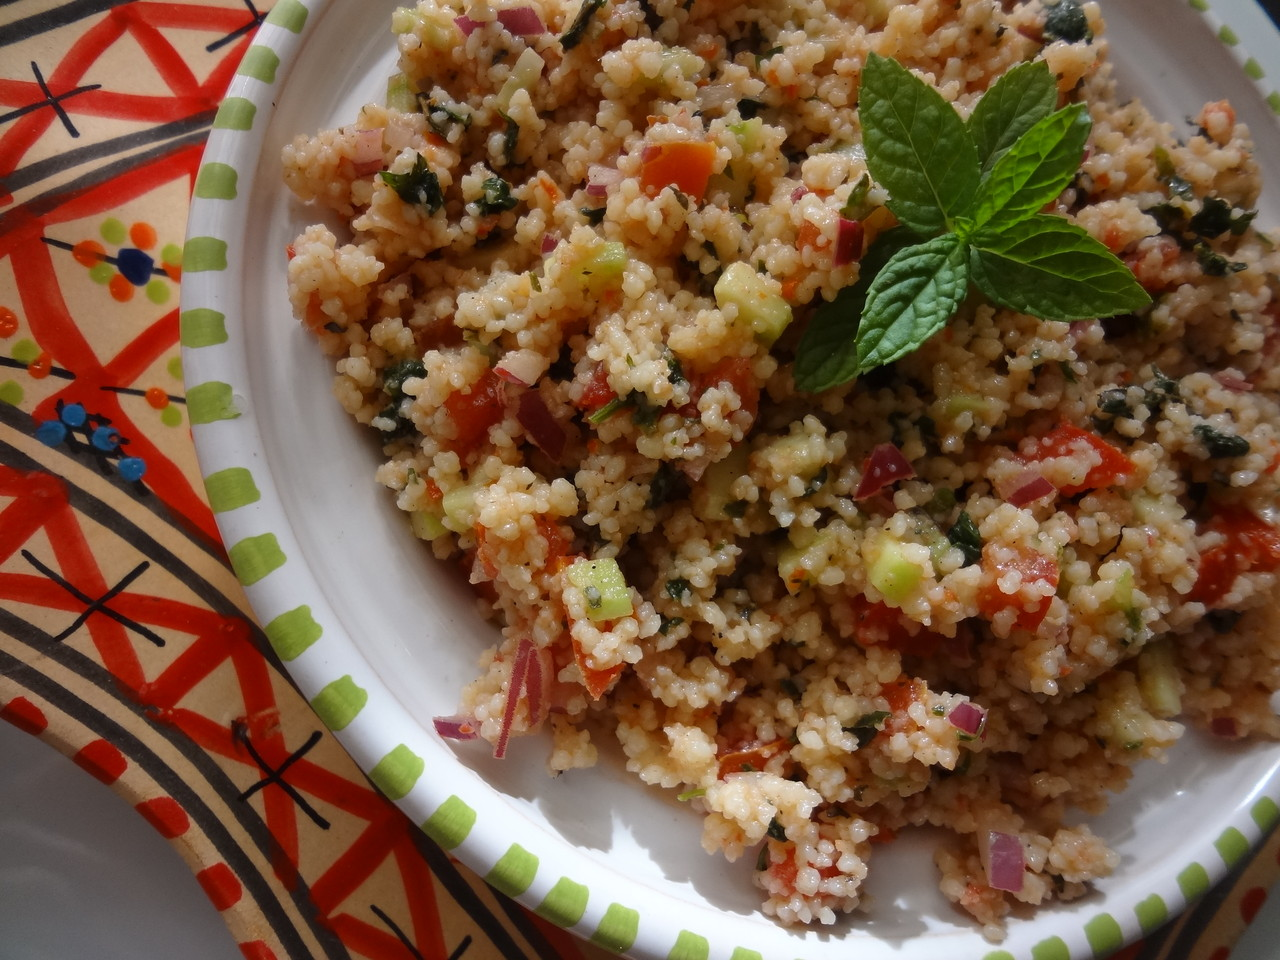 Taboule Tunisienne